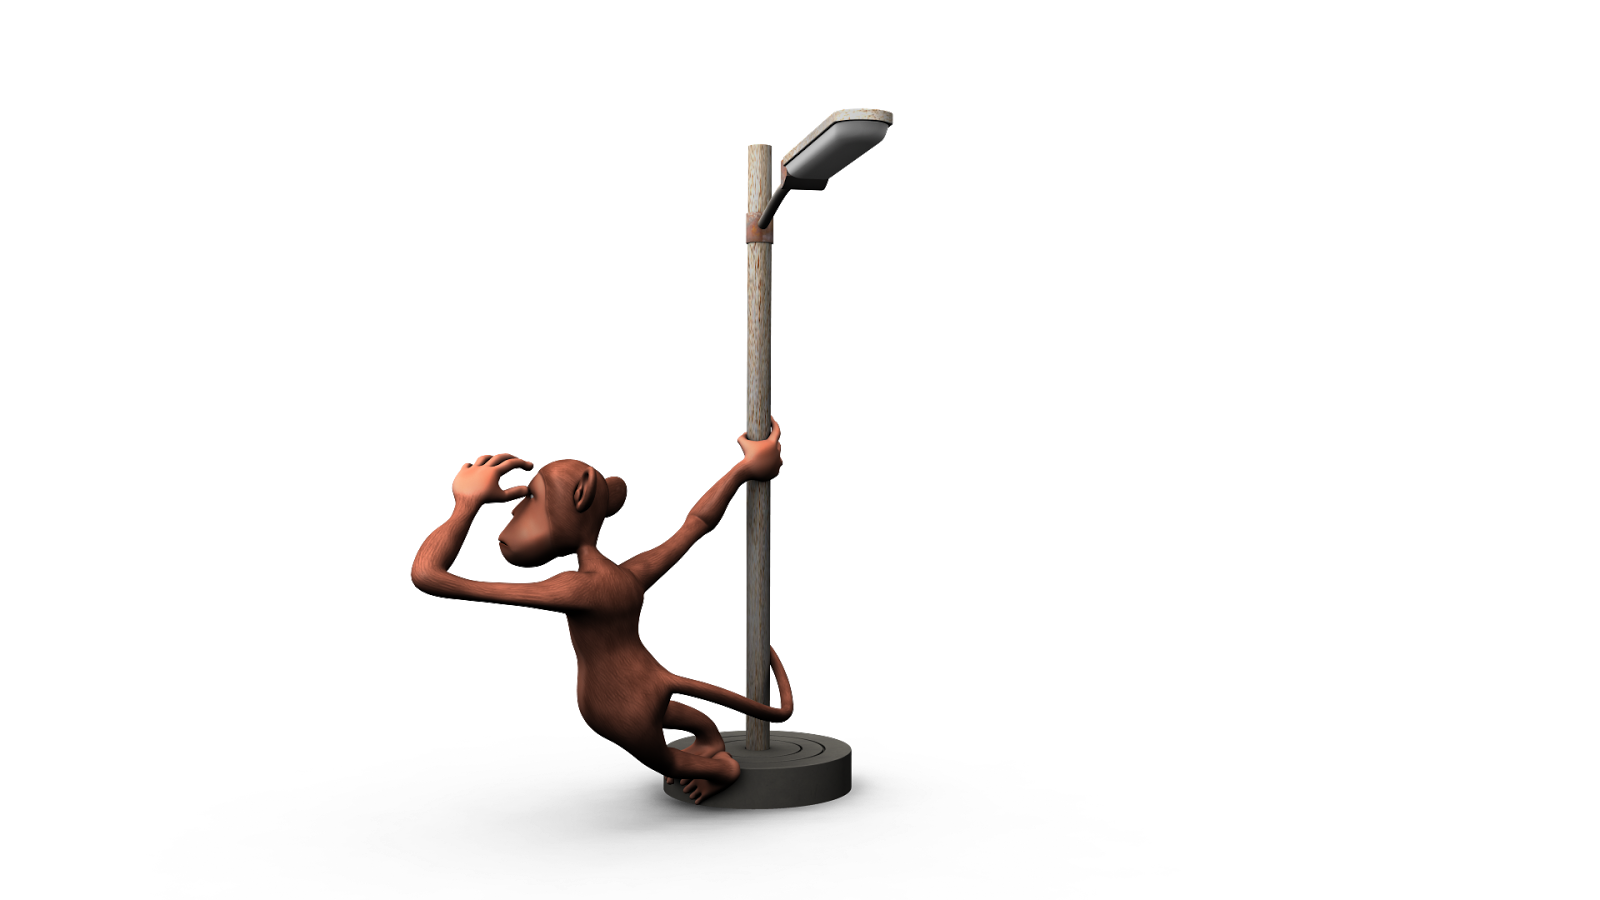 Pole 4 Passion How To Wire A 2 Way Light Switch Diagram 3d Toon Monkey With An Electric